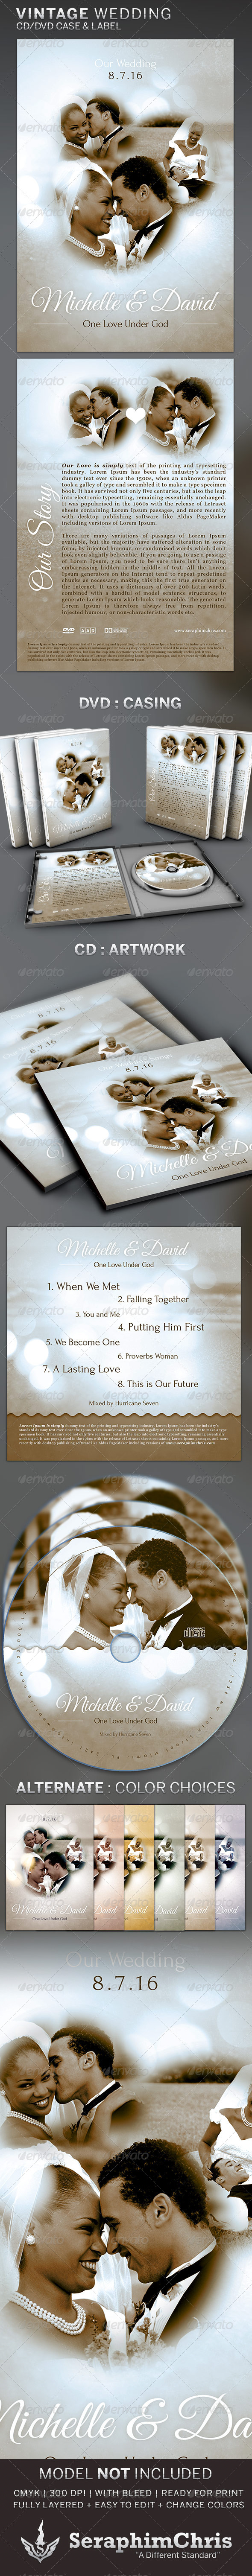 GraphicRiver Vintage Wedding CD DVD Template 4835523